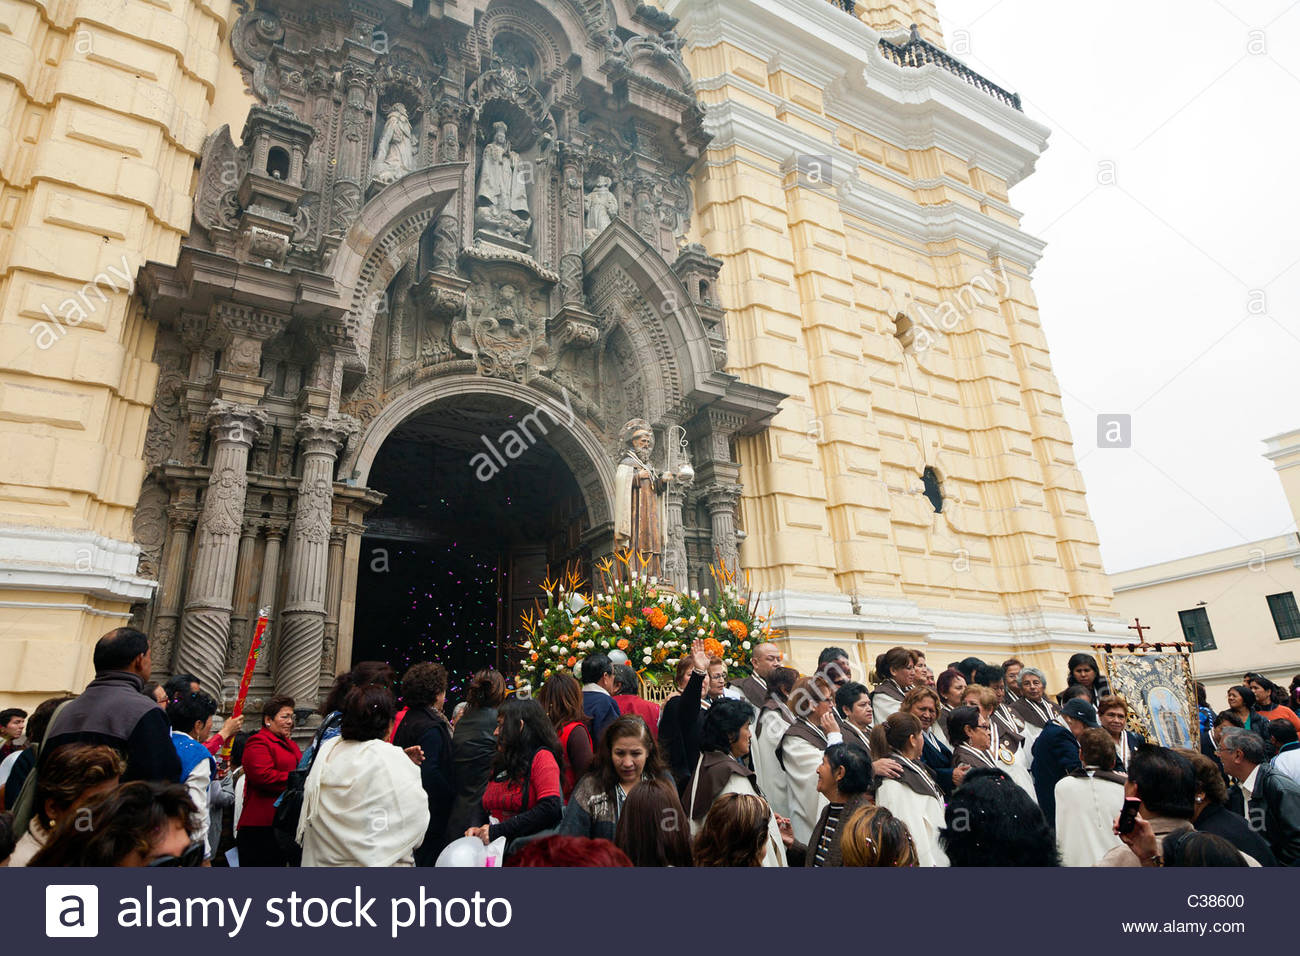 Crowd celebrating Señor de los Milagros (Lord of Miracles) in front of Saint Francis Monestary. Lima, Peru. - Stock Image